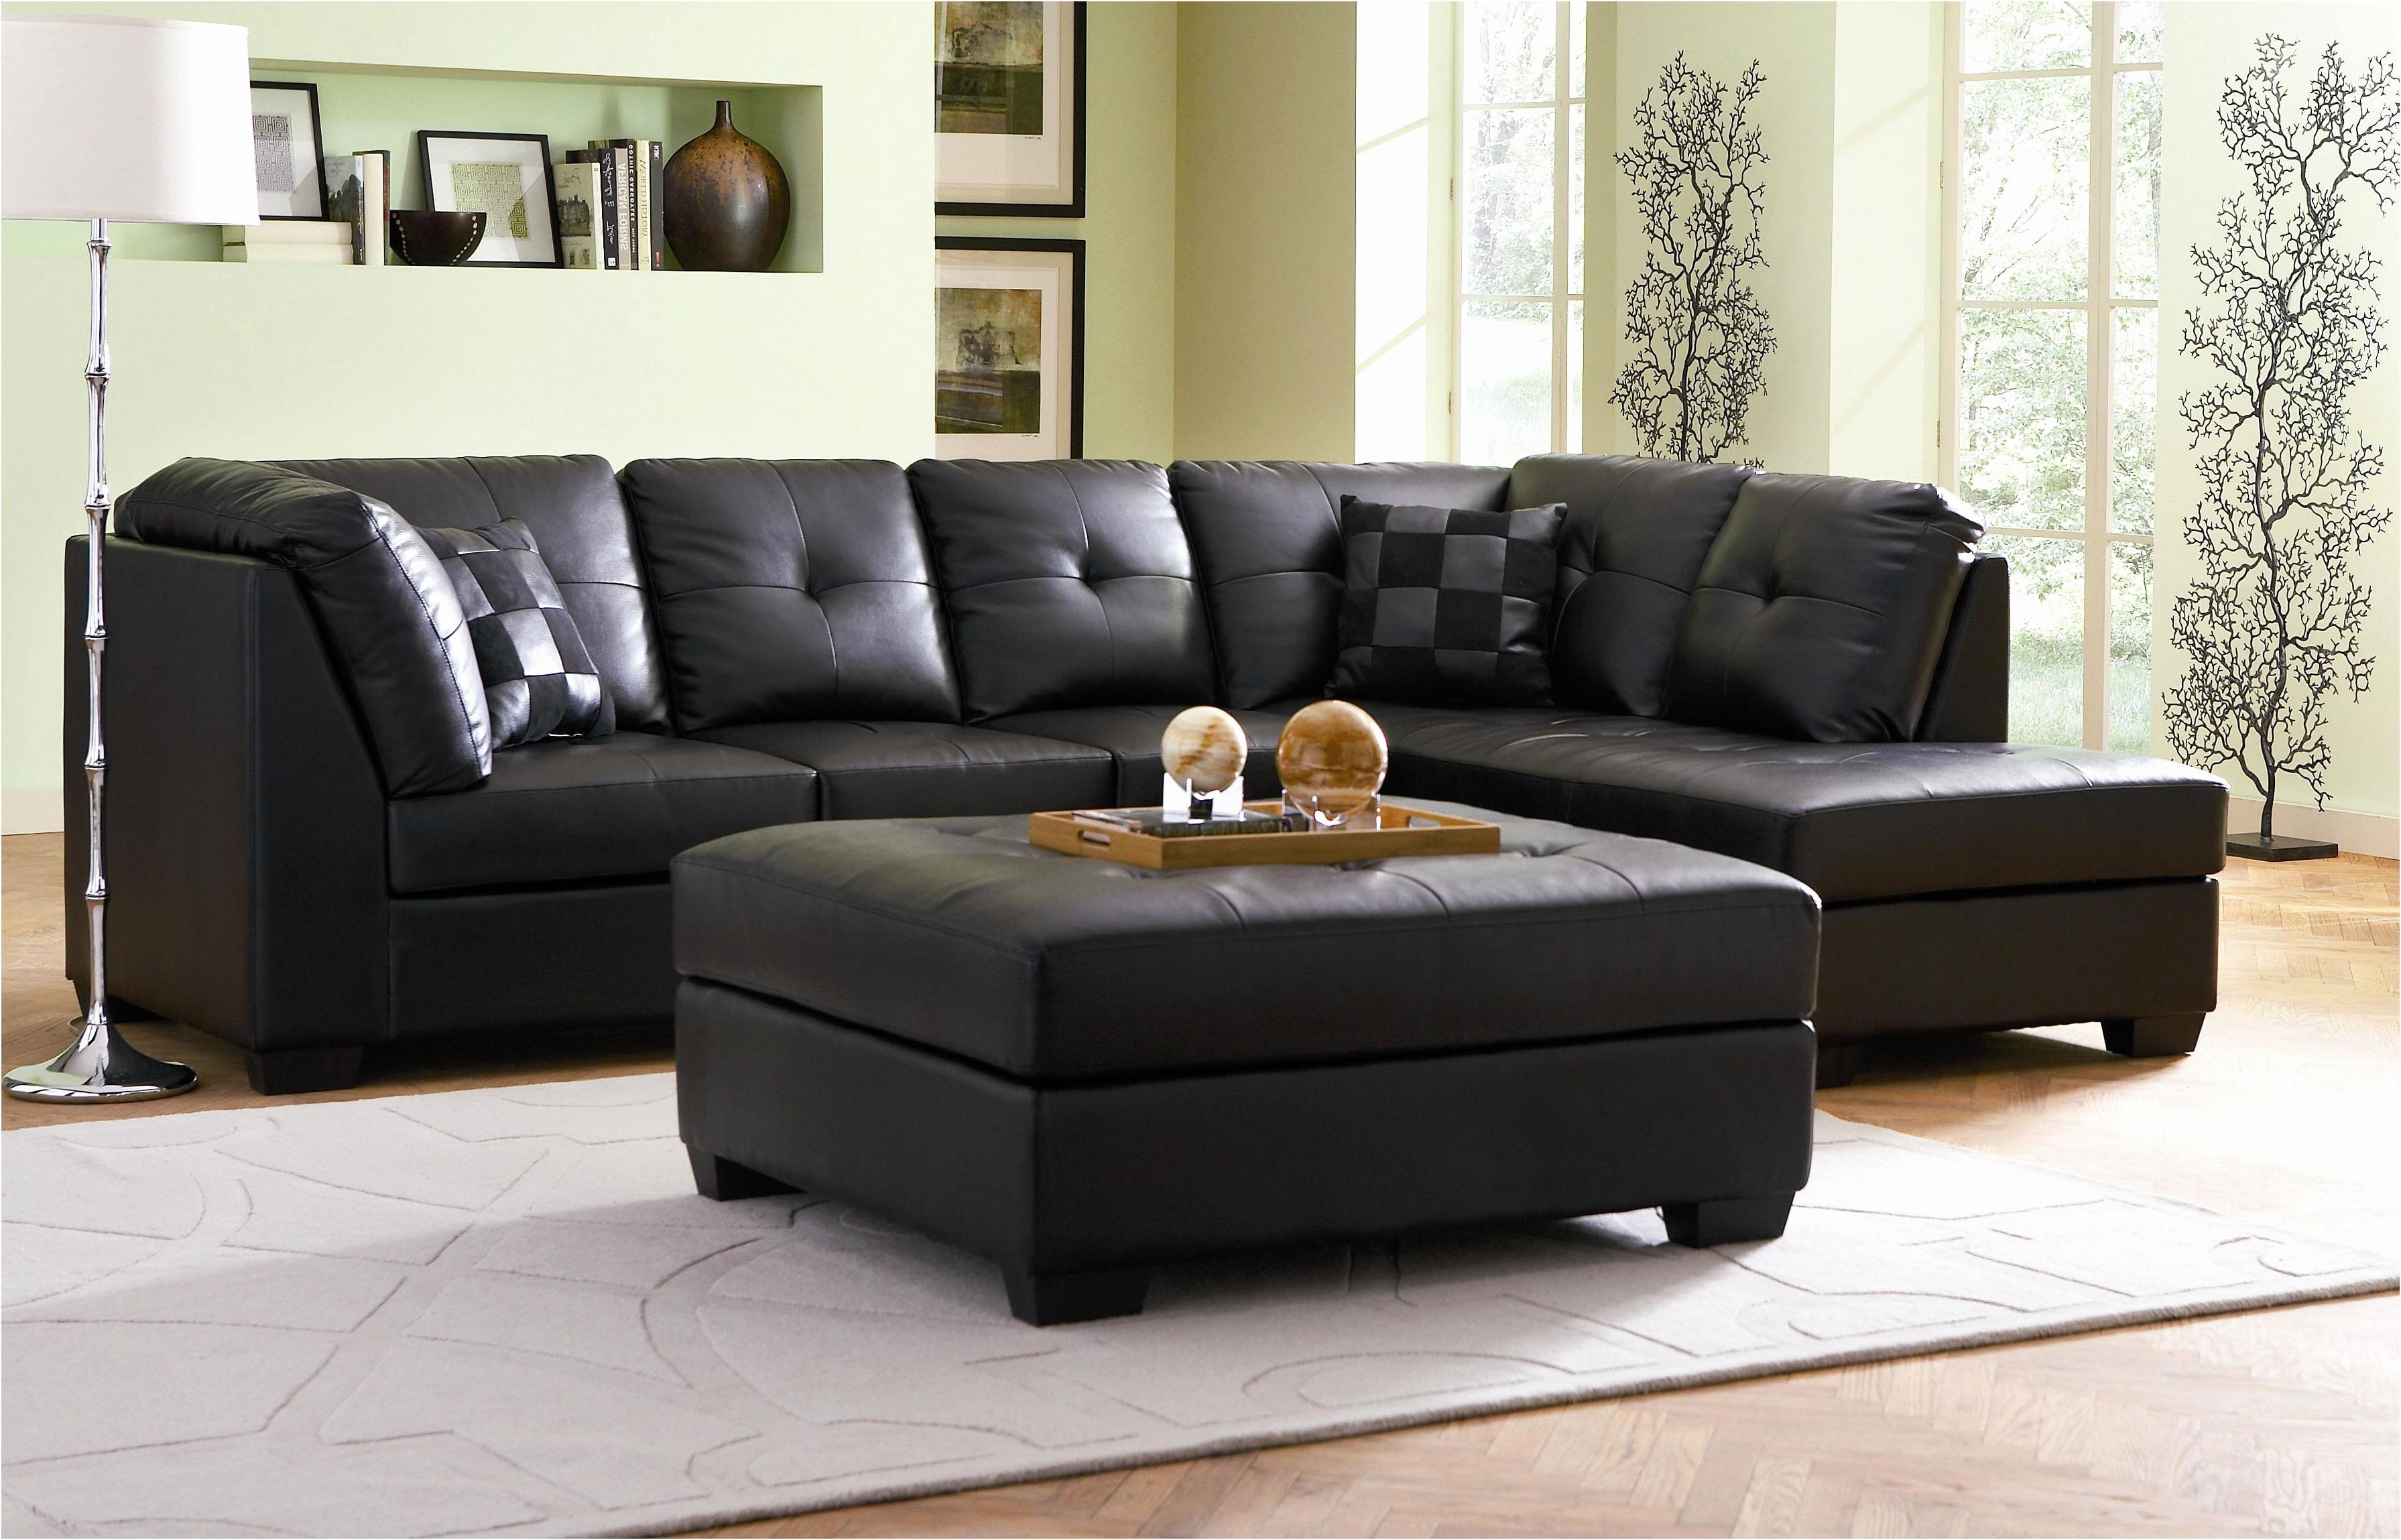 Sofas : Marvelous Black Sectional Sofa Small Sectional Couch Grey Intended For Black Leather Sectional Sleeper Sofas (Image 18 of 21)